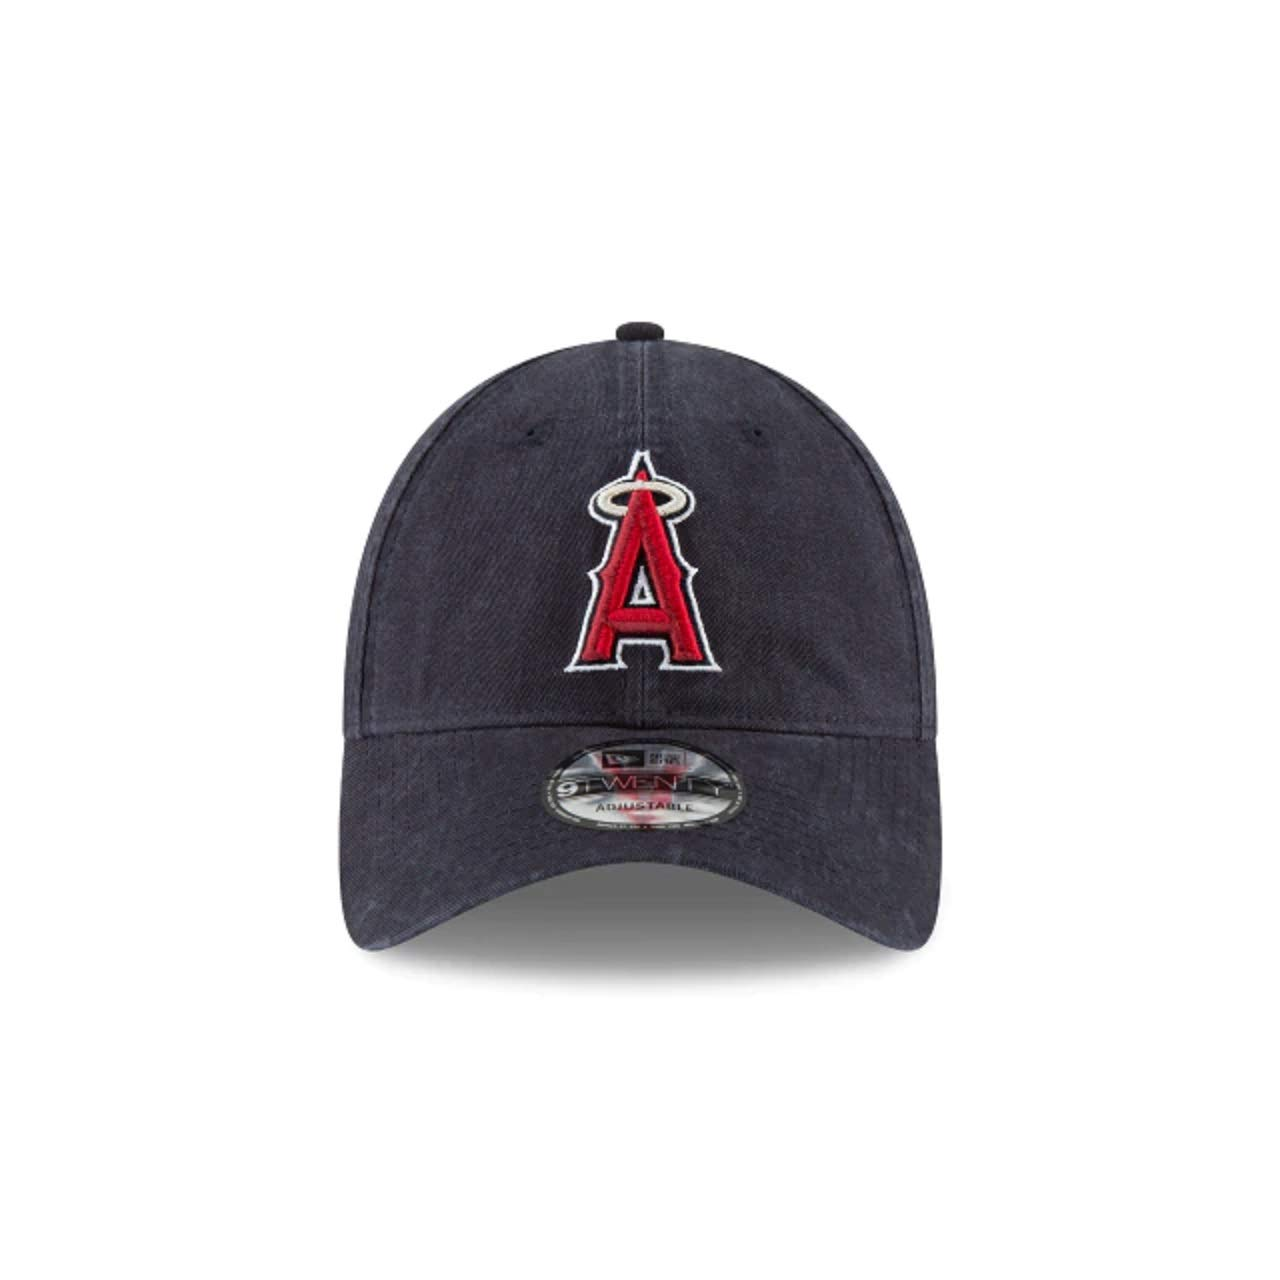 info for 76aa4 fe75c Amazon.com  New Era Core Classic 9TWENTY Adjustable Hat (Anaheim Angels  (Navy))  Clothing